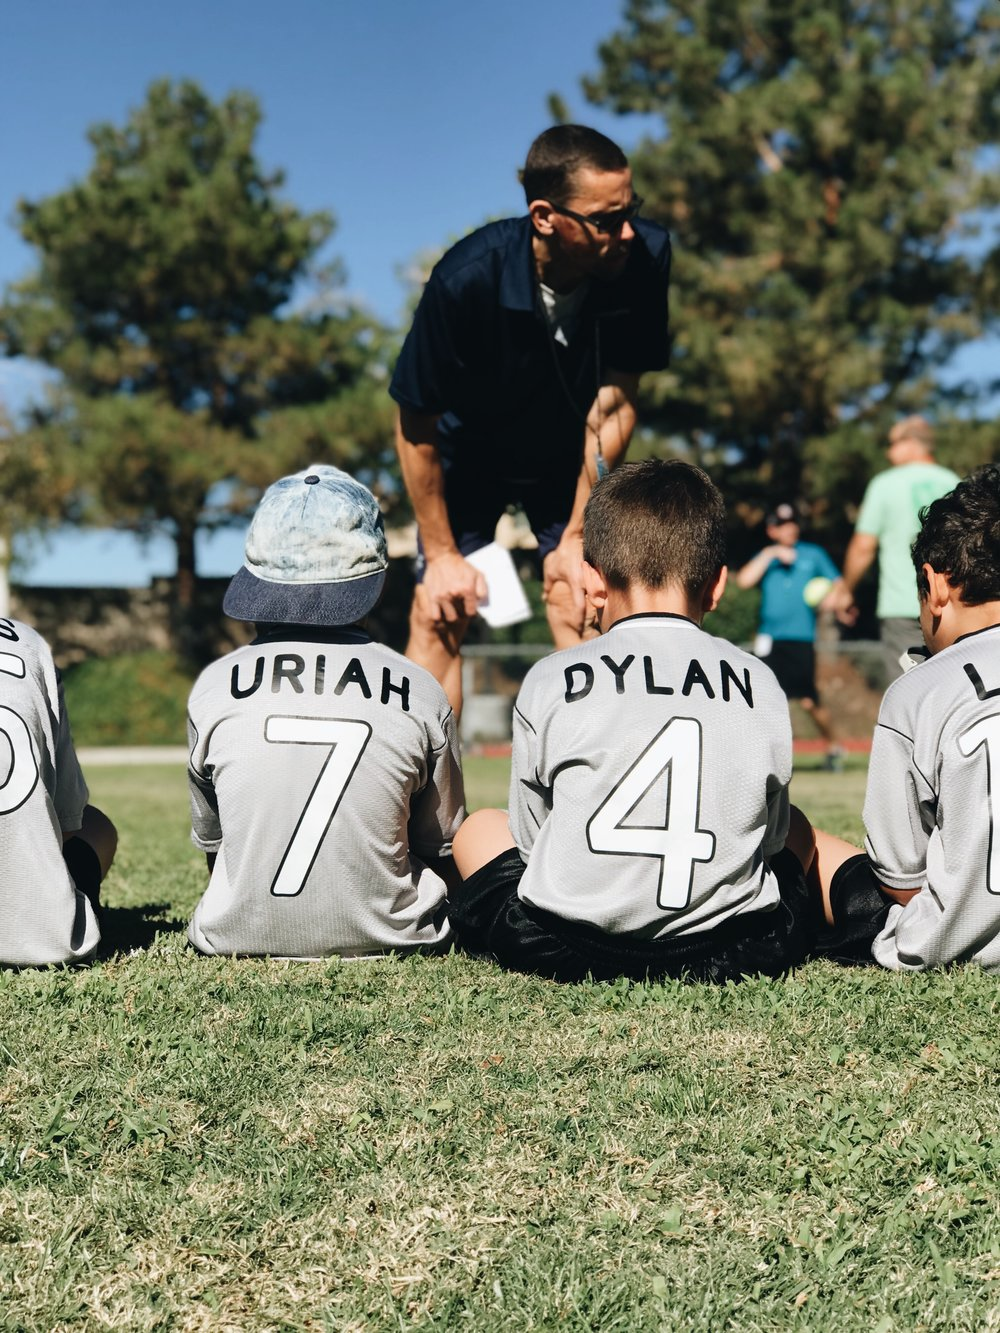 This was the second ever soccer game for my babe Uriah #soccermom